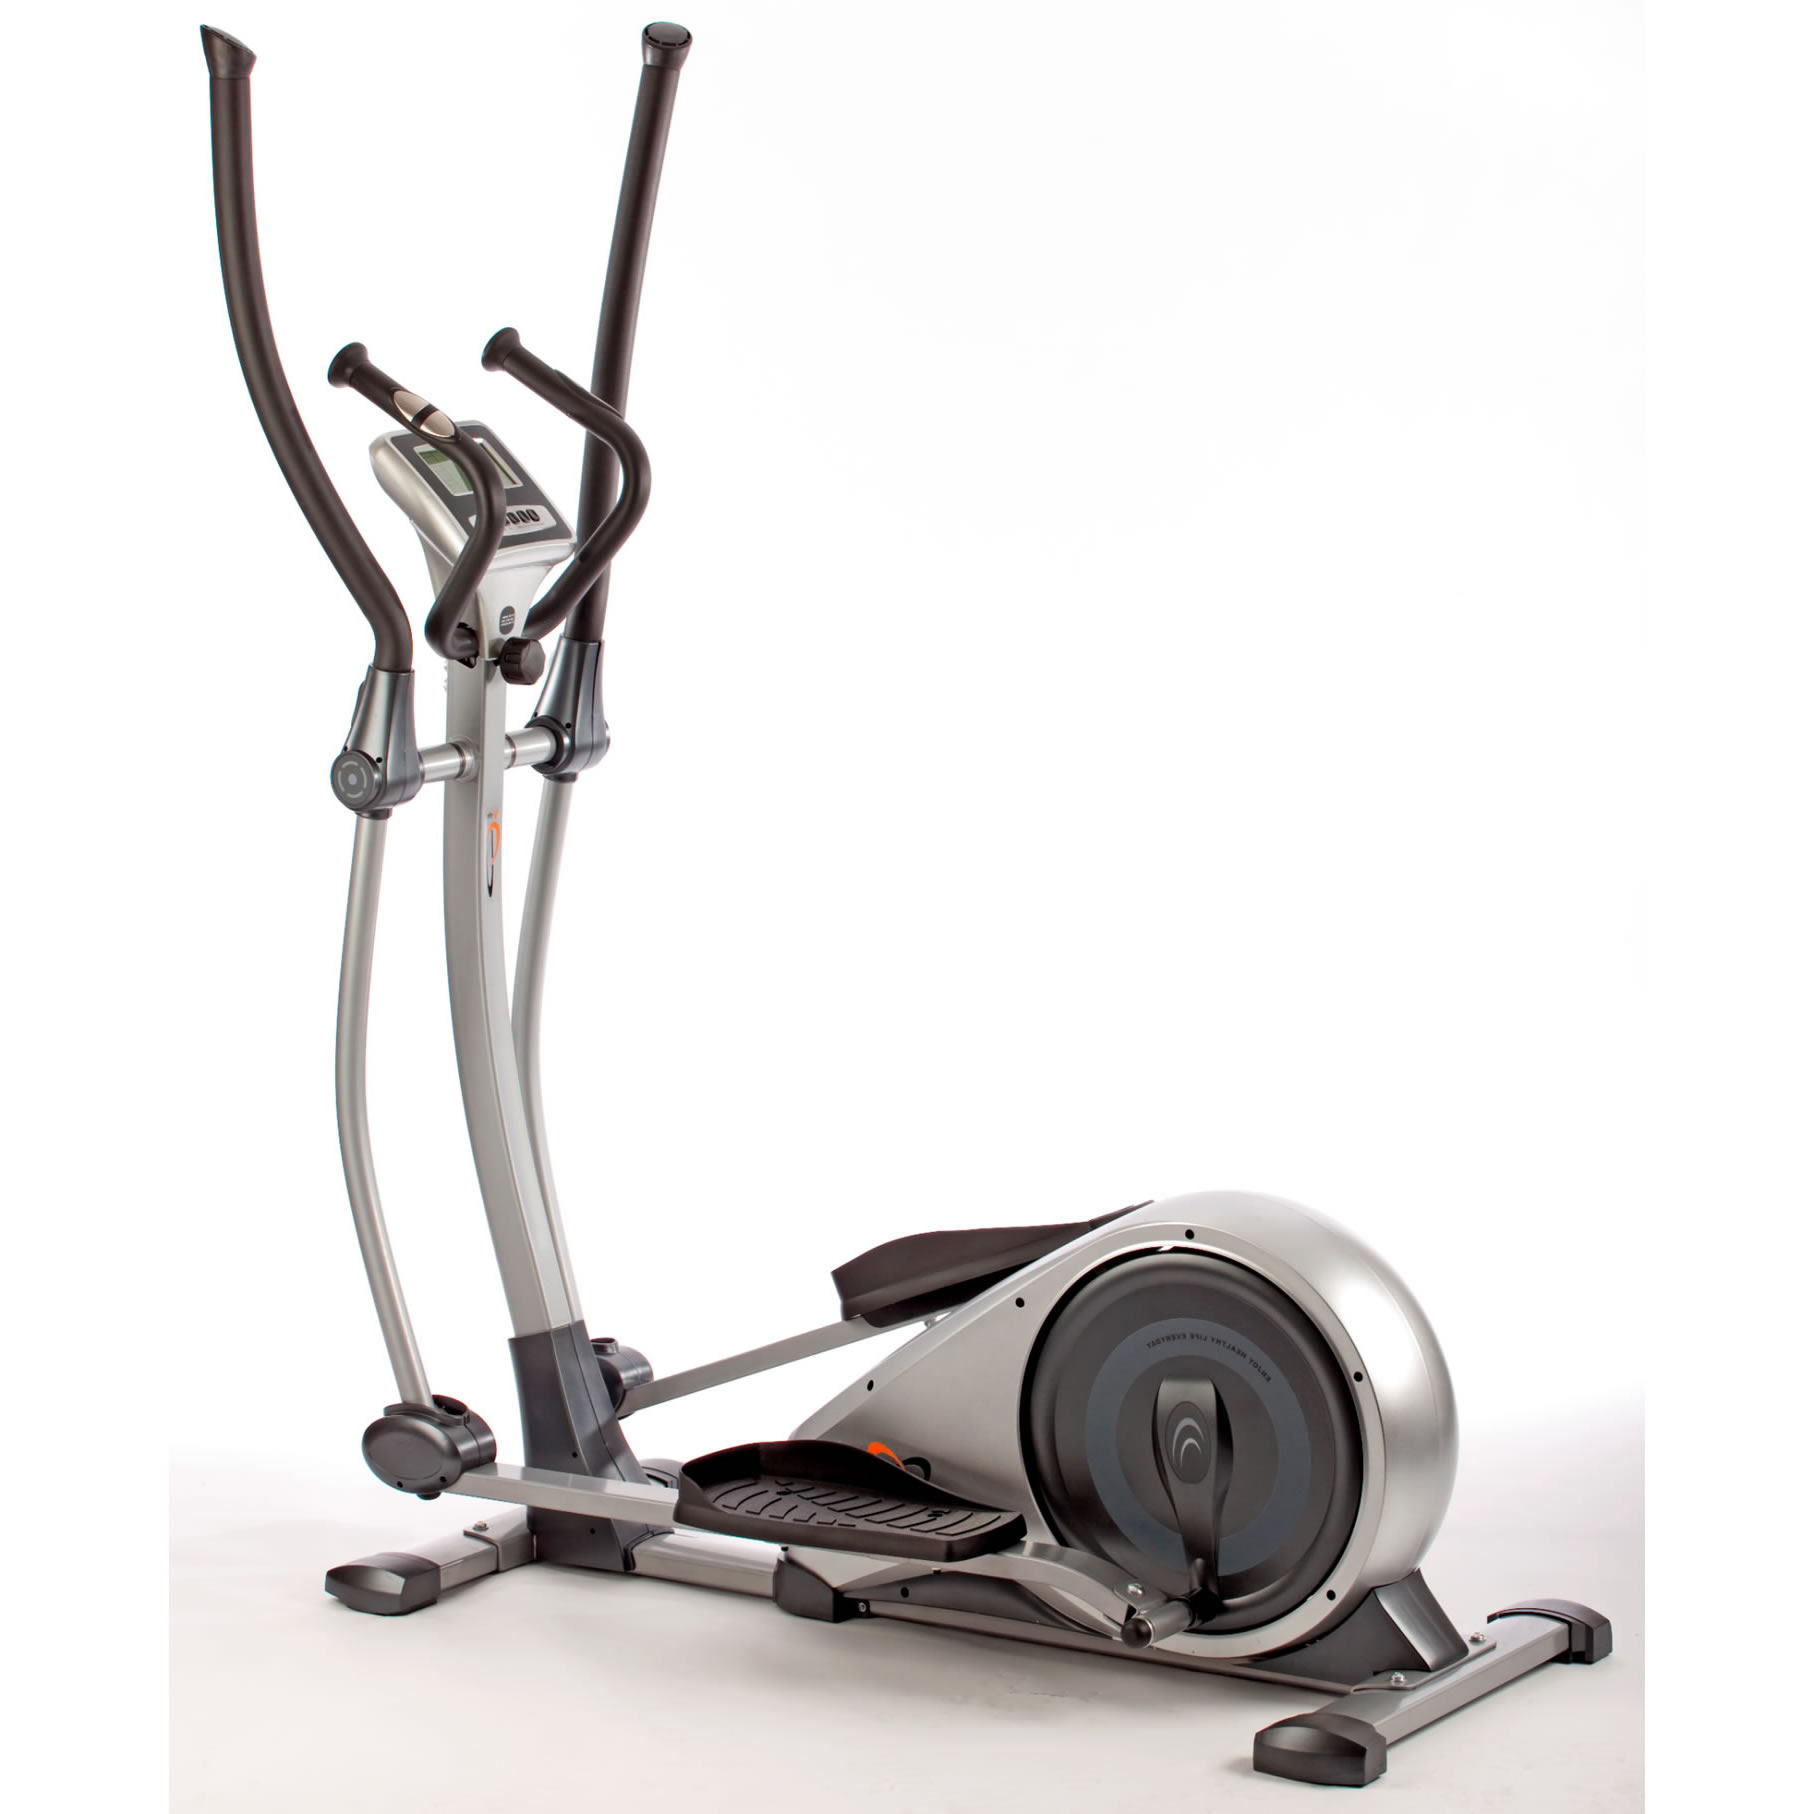 bce3244b42f Elliptical machines are considered to be the best low impact workout  solution that is perfect to meet everyone s need of routine workouts at  budget friendly ...